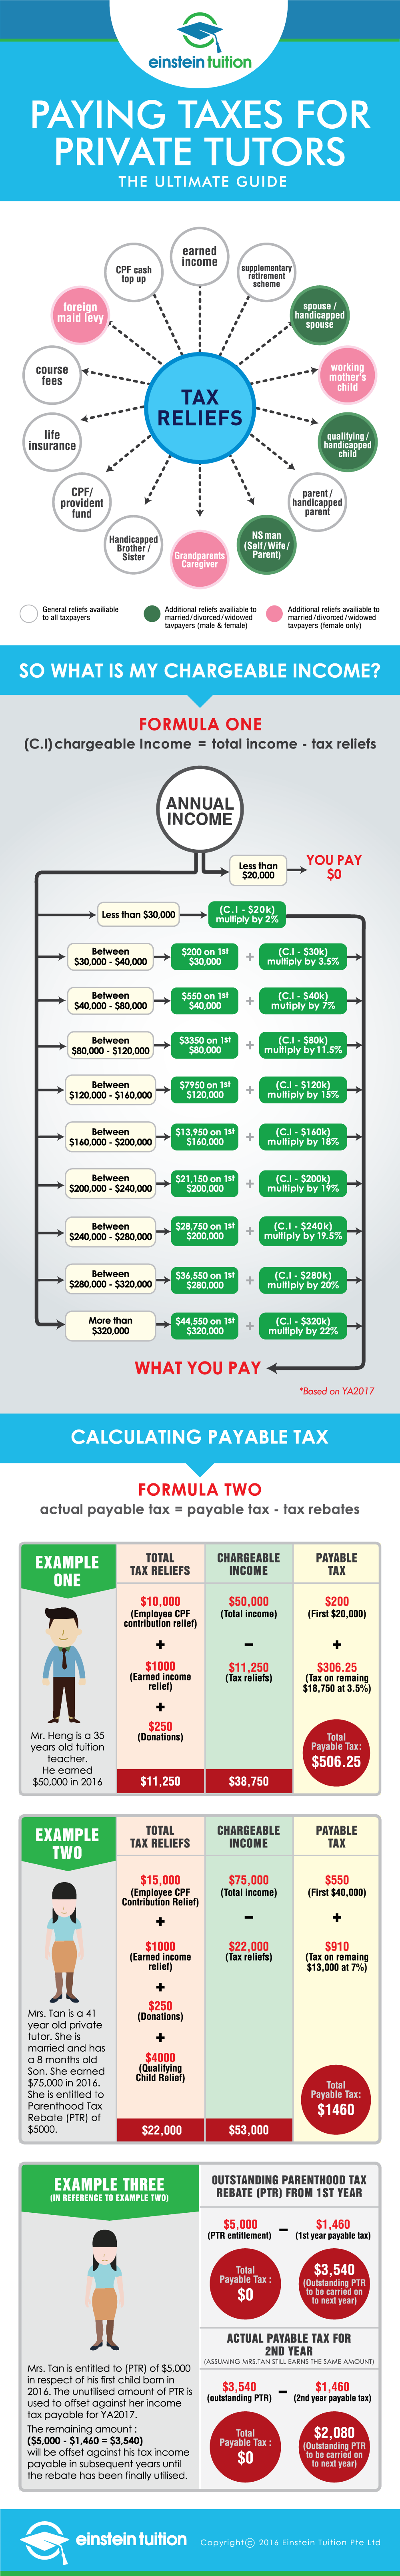 Paying Taxes for Private Tutors - The Ultimate Guide